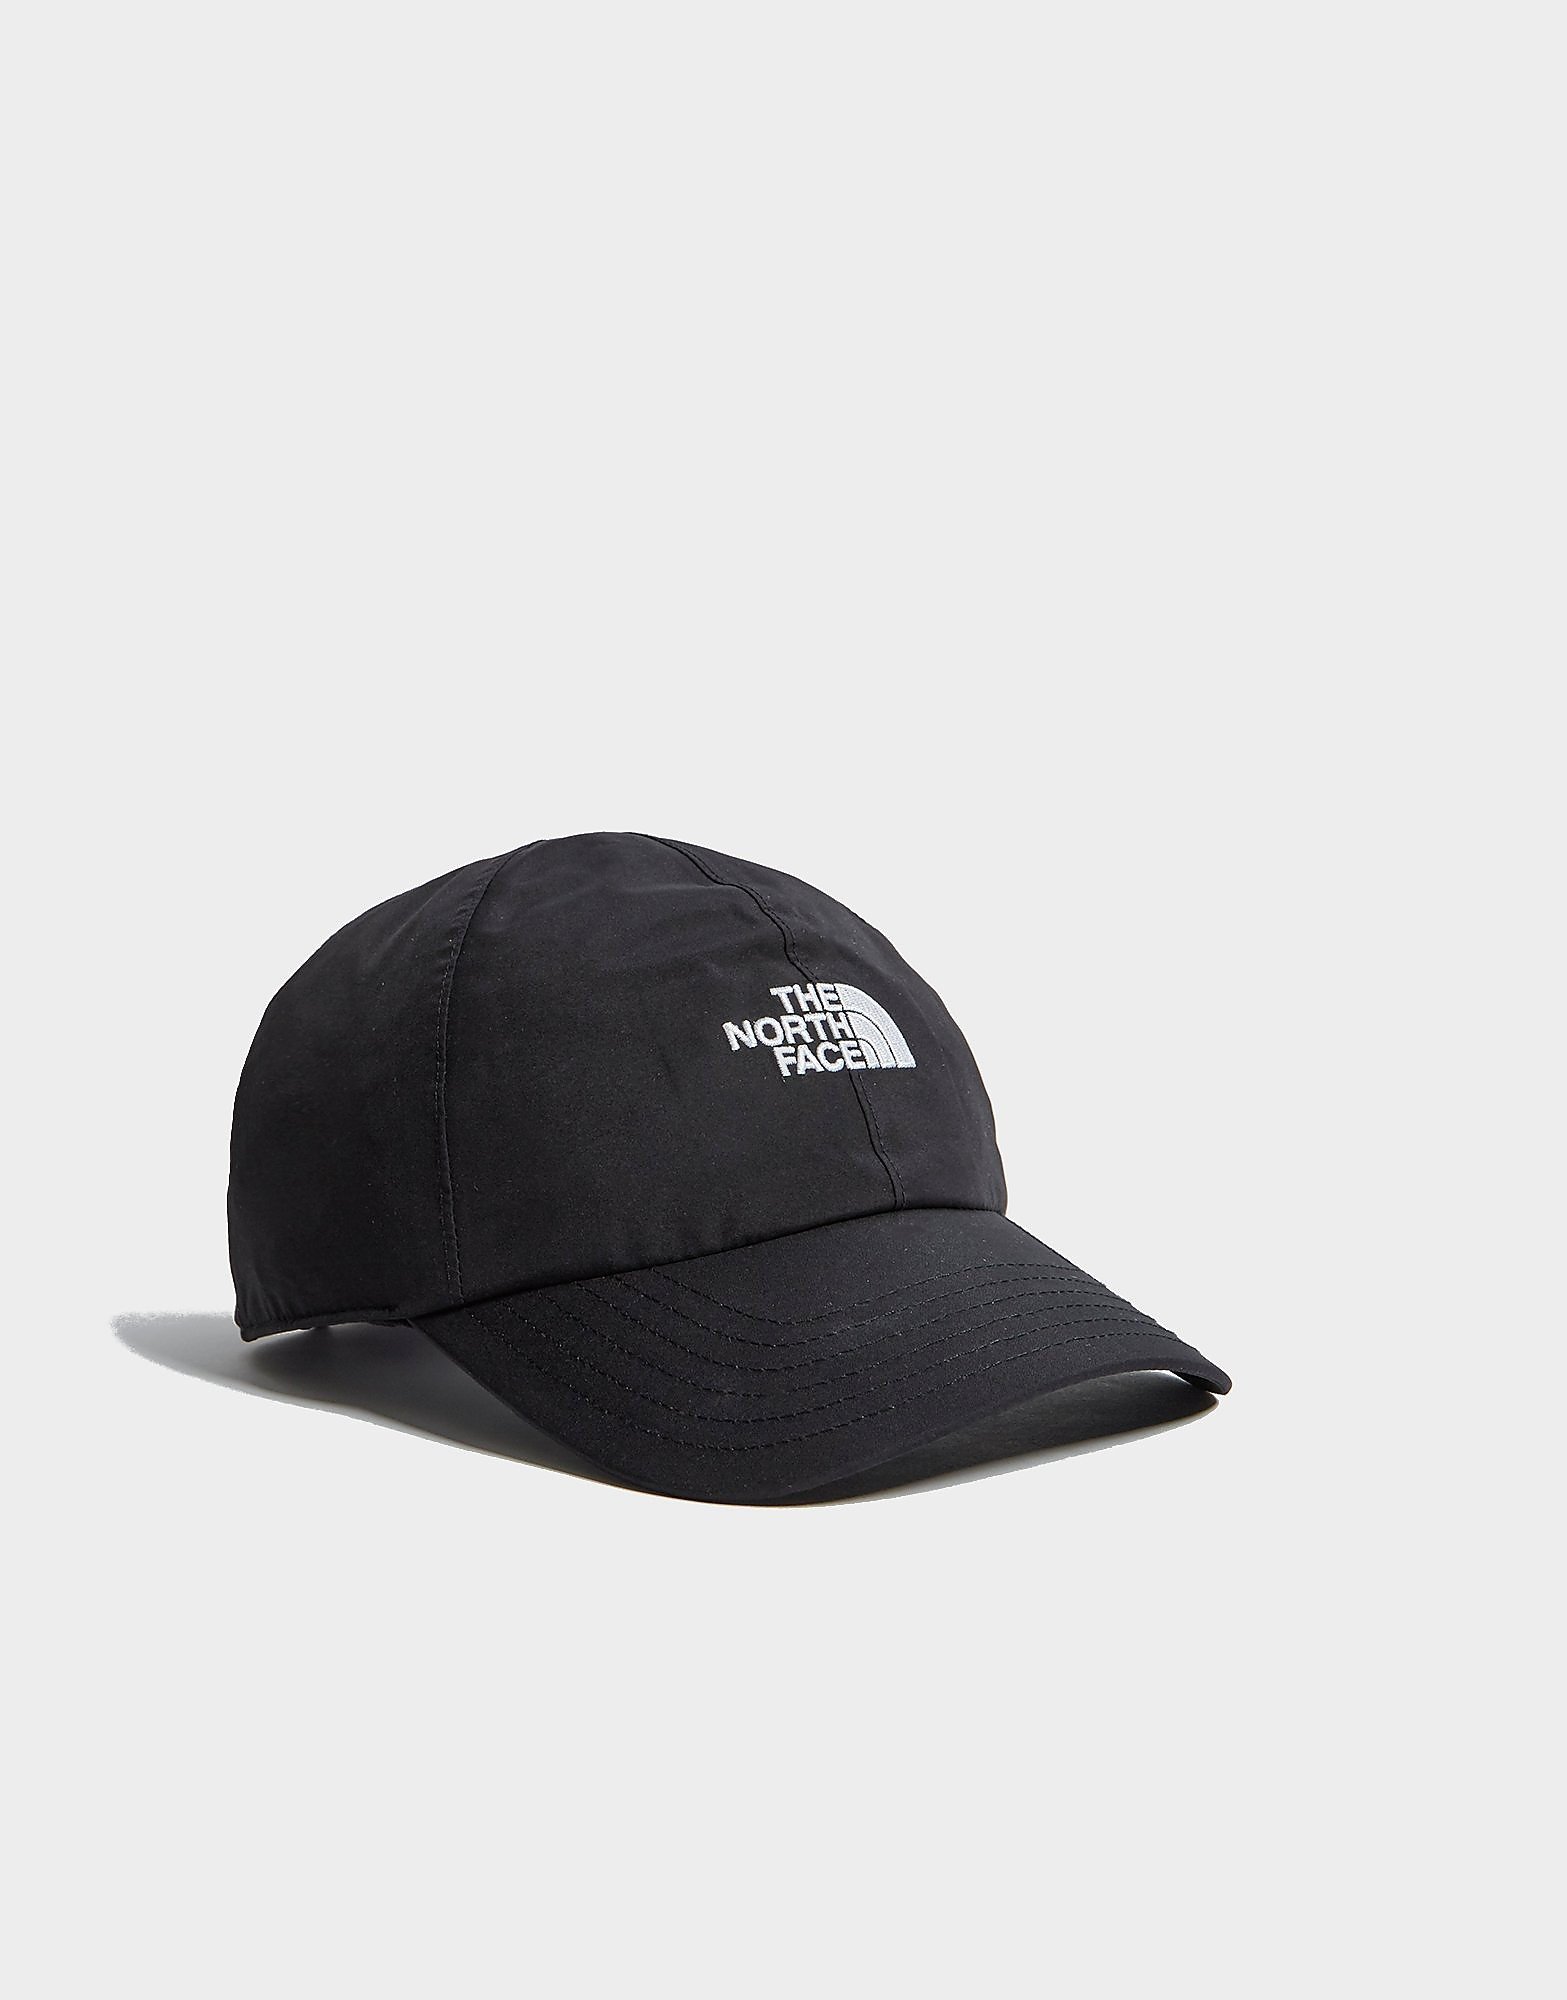 The North Face Gore Cap